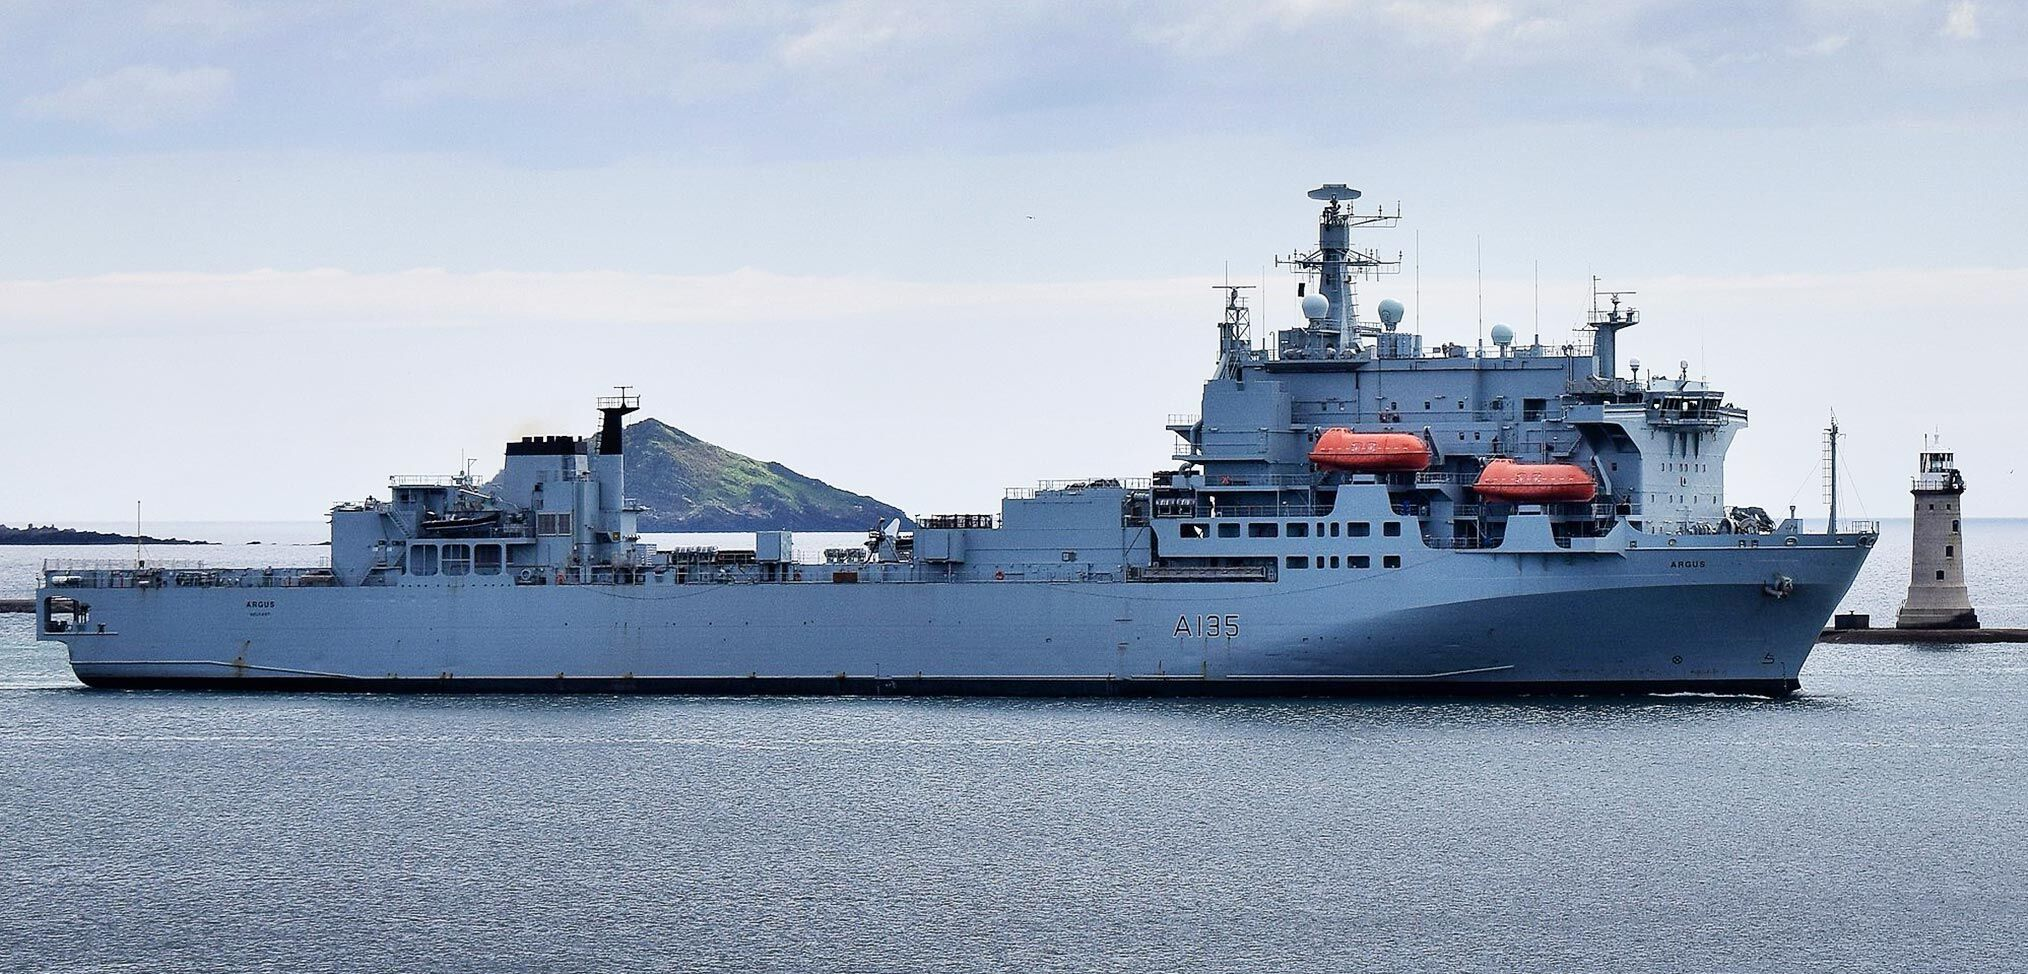 RFA Argus sails for the Caribbean today ready to provide medical support if needed